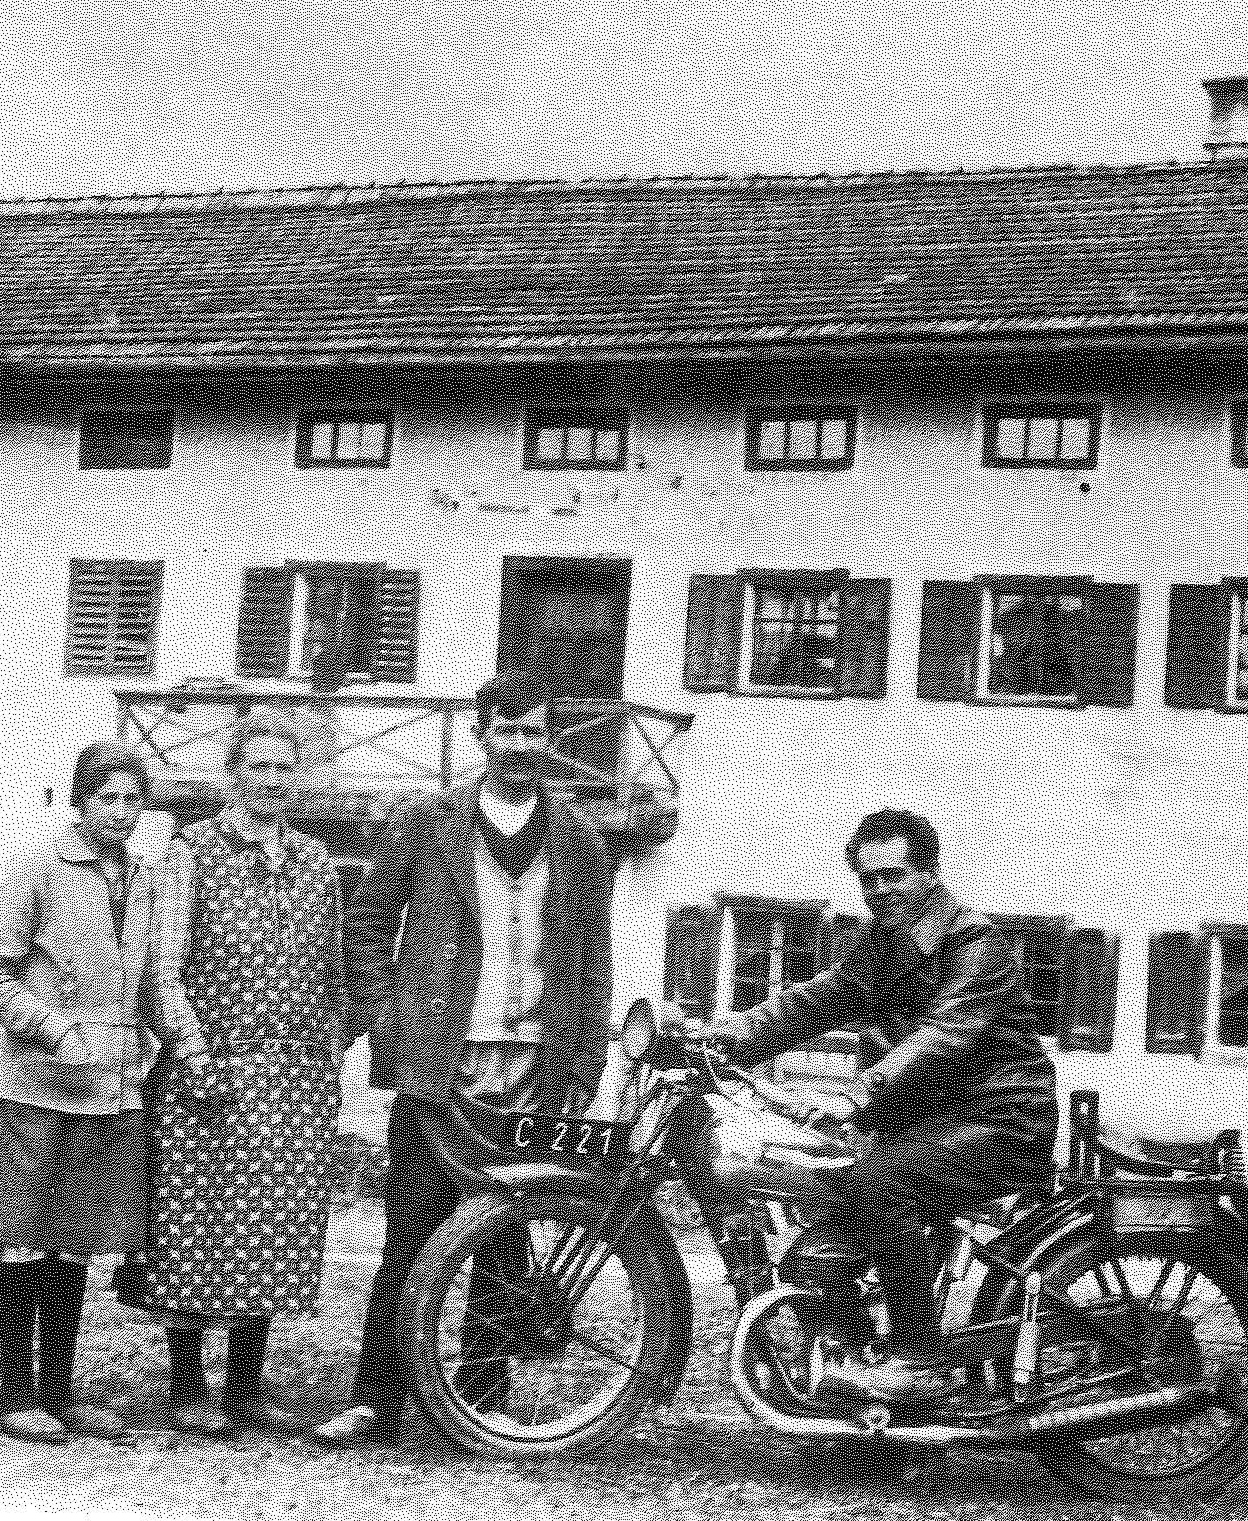 Franz Jagerstatter poses on his motorcycle. From right to left: Franz Jagerstatter; his stepfather, Heinrich Jagerstatter; his mother, Rosalia Jagerstatter; and Aloisia Sommerauer, Franz's cousin and foster sister. /Styria Verlag. Used with permission.